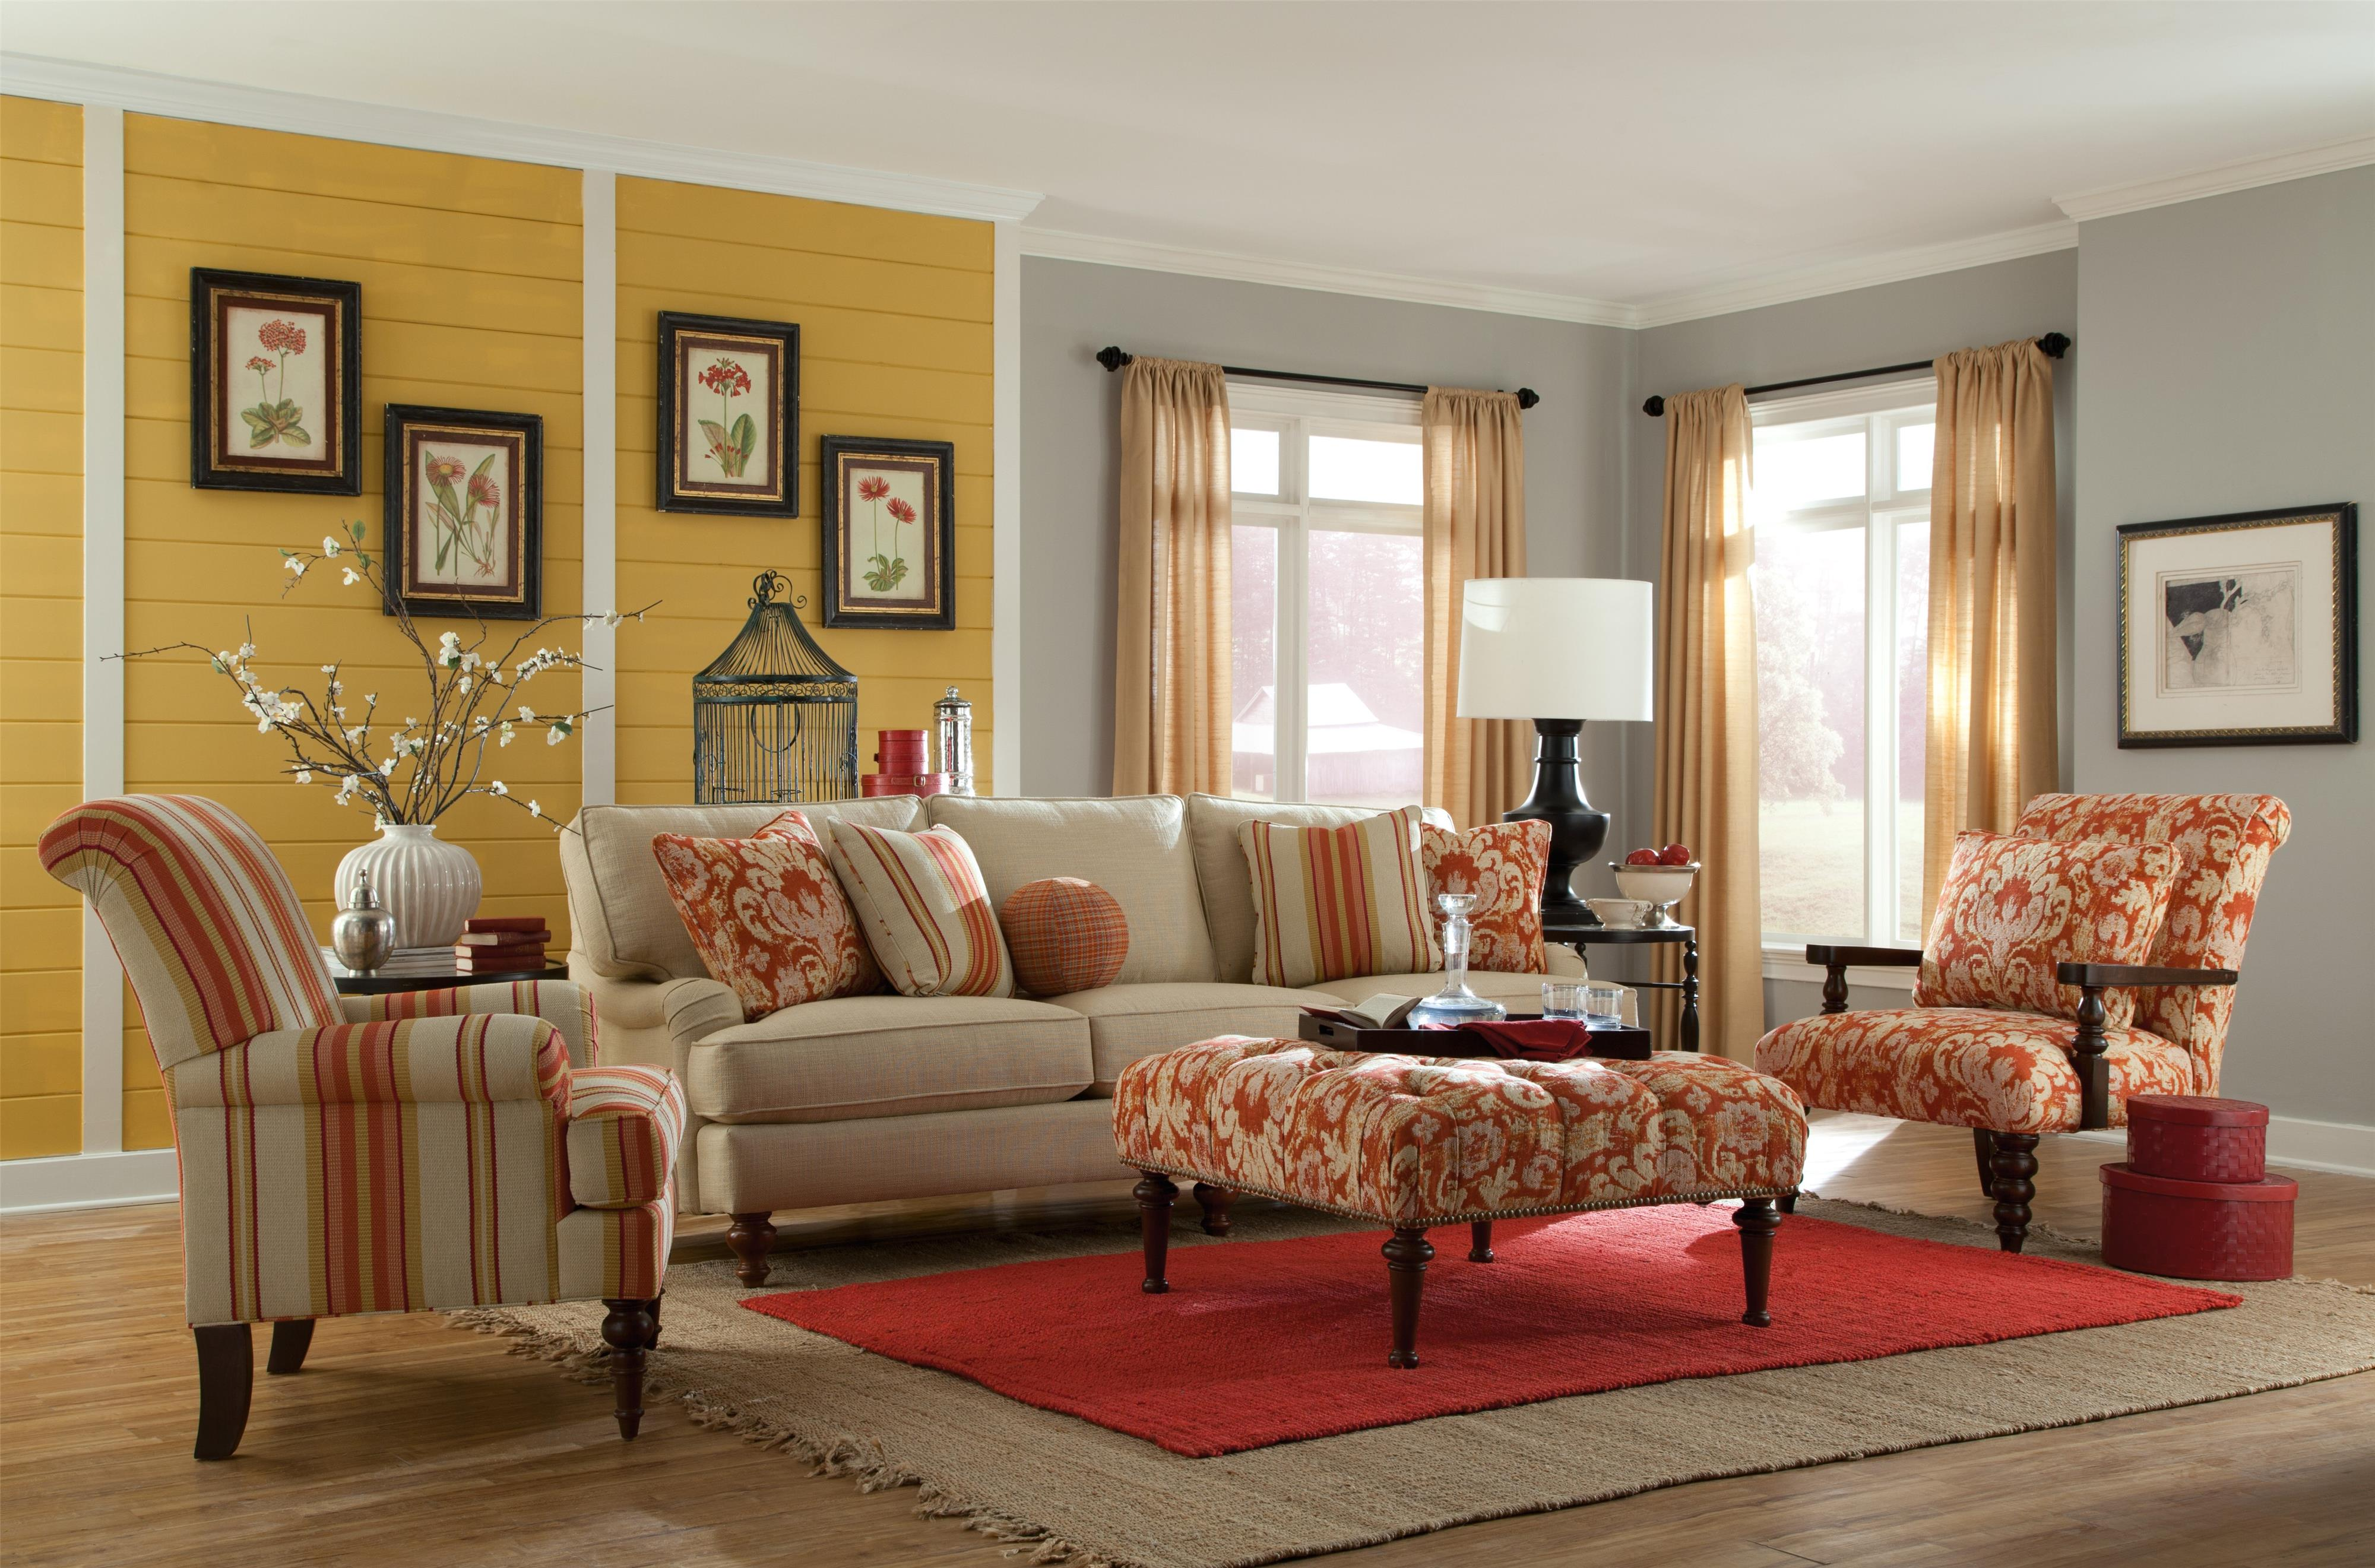 paula deen living room furniture collection victorian style upholstered accents special order uph by craftmaster hudson s